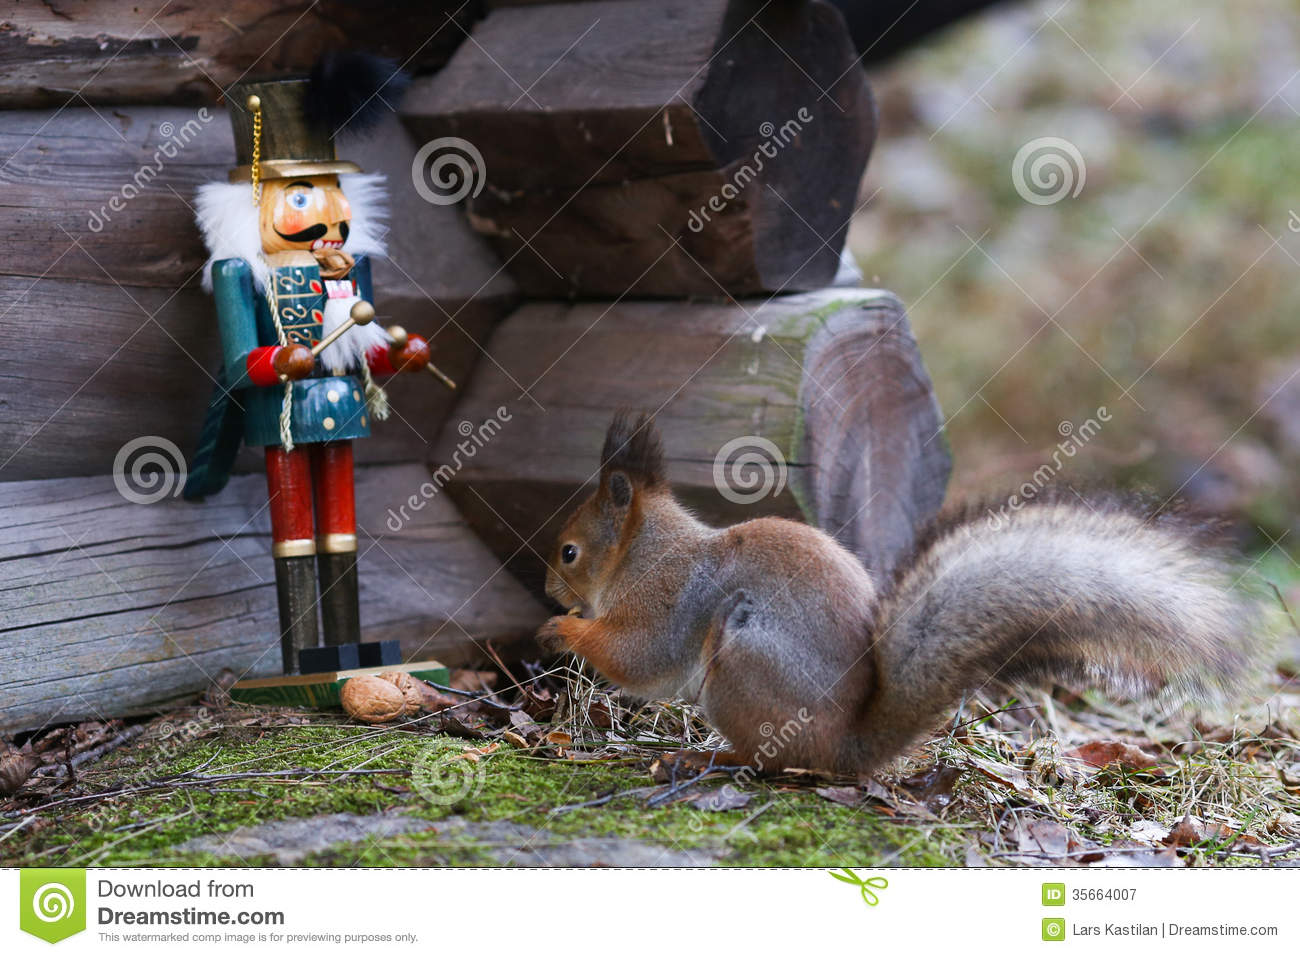 Nutcracker and squirrel royalty free stock photography image 35664007 - Nutcracker squirrel ...